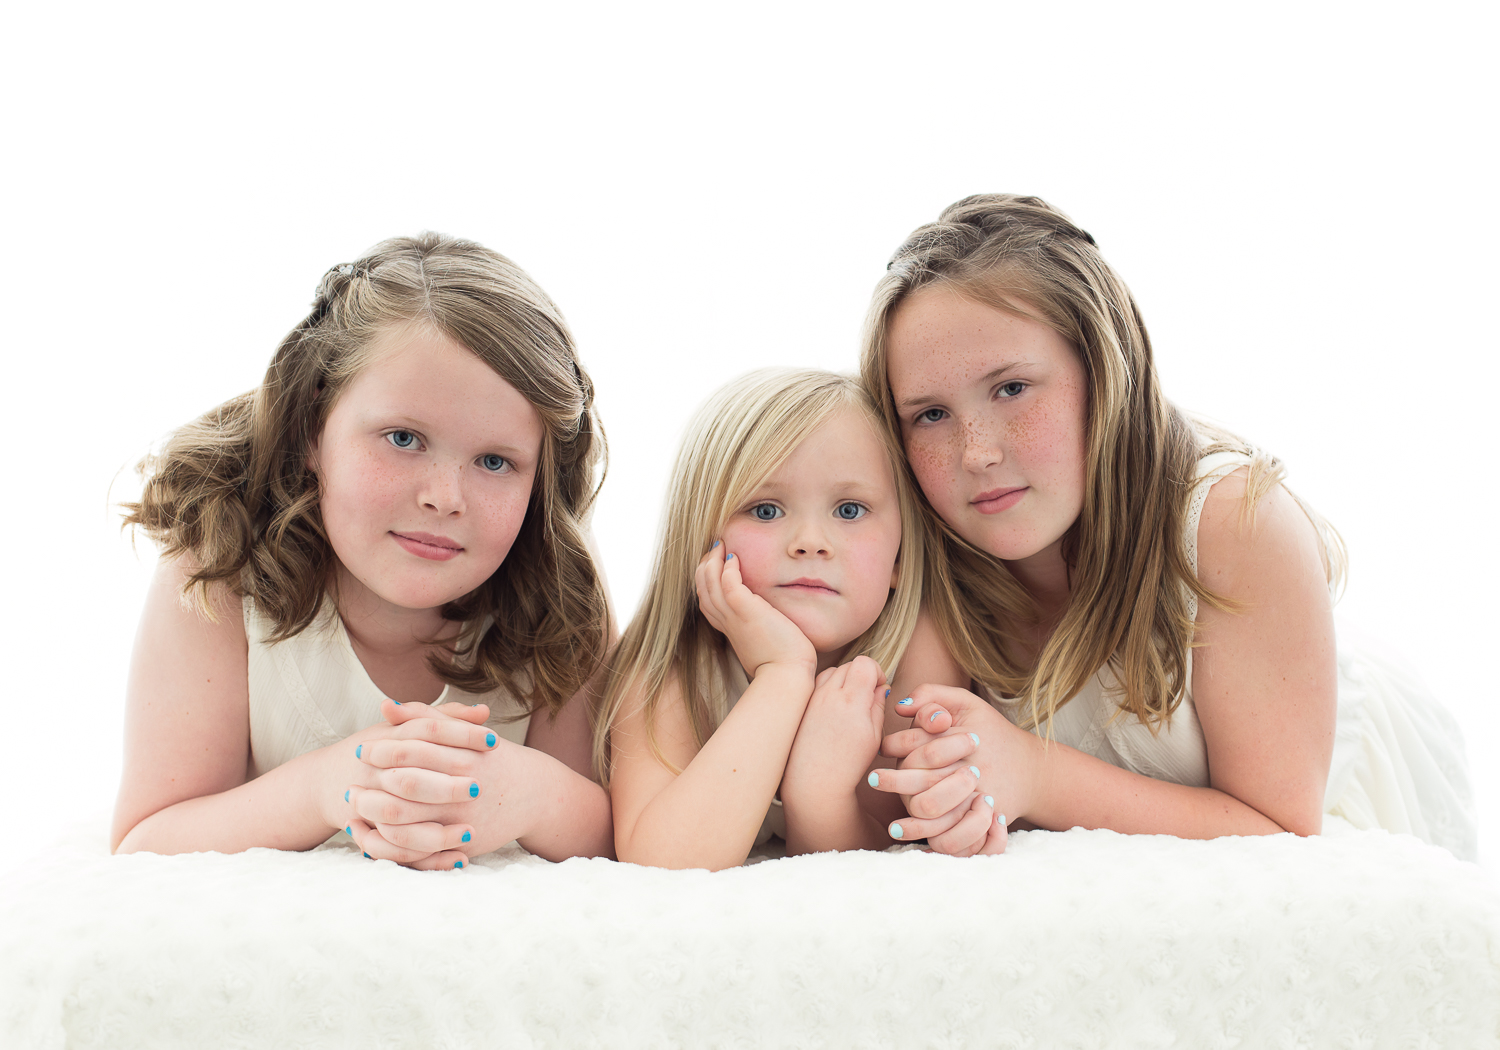 Backlit studio photograph of 3 sisters all in white